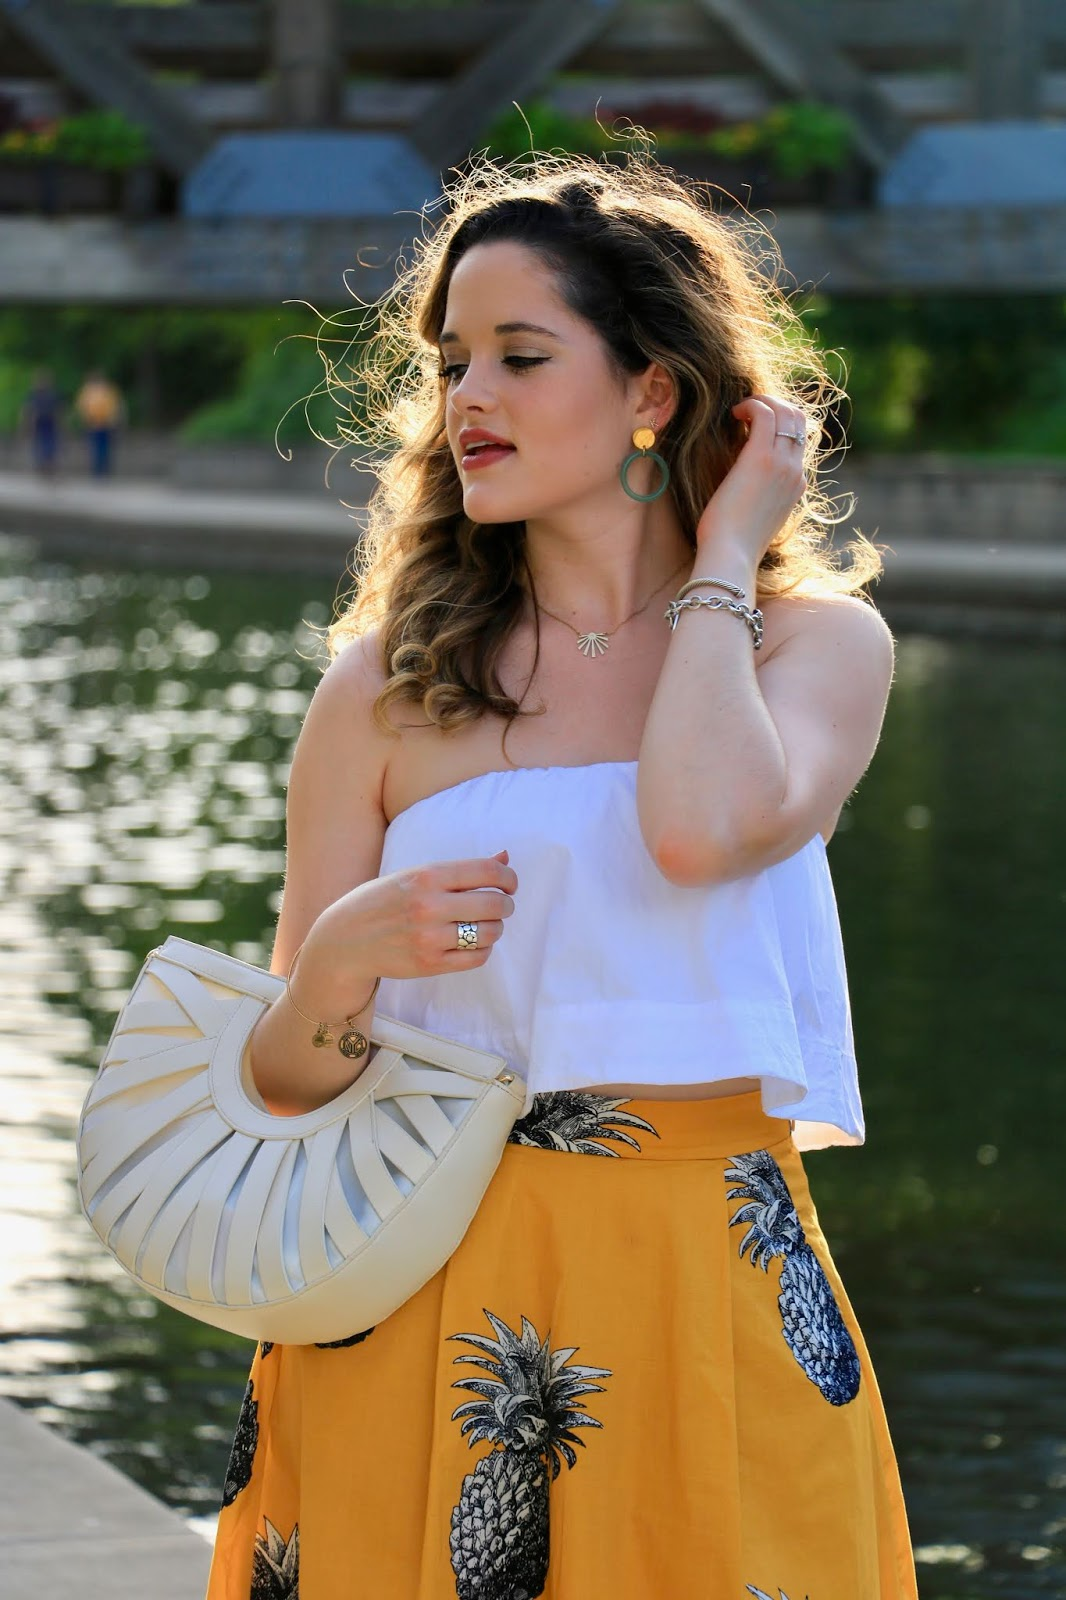 Nyc fashion blogger Kathleen Harper wearing a pineapple midi skirt with a strapless, white crop top.